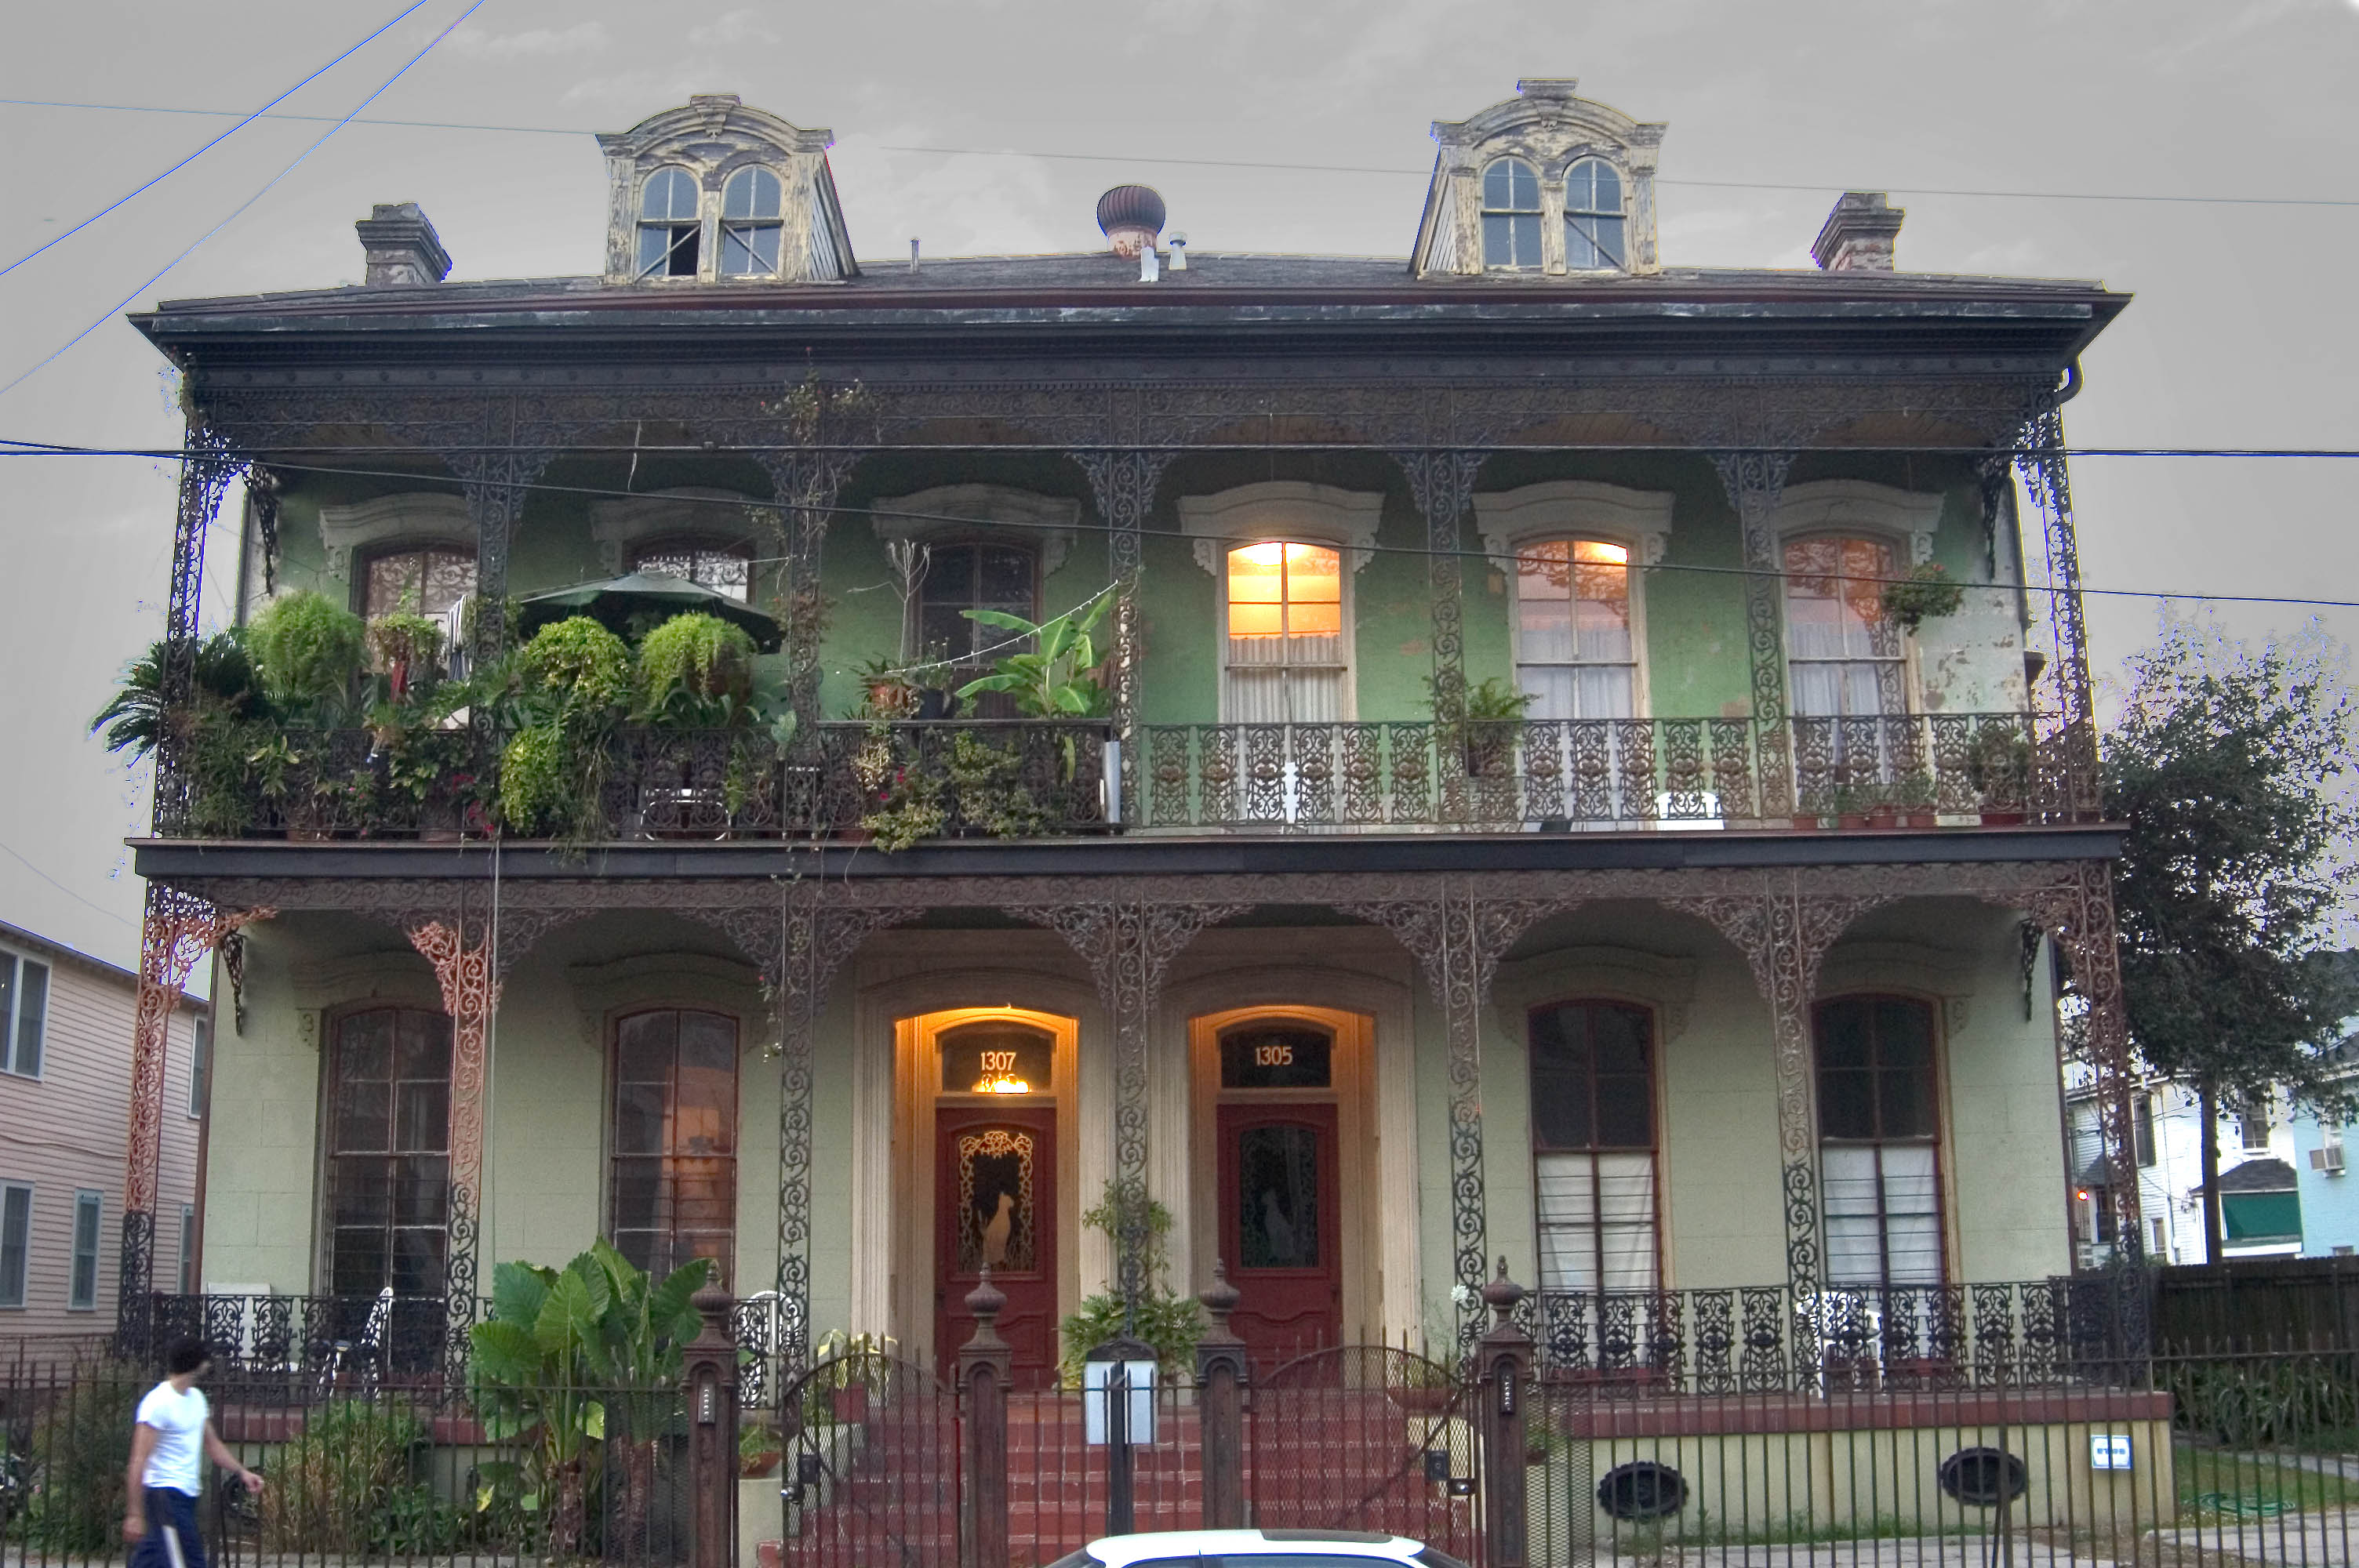 Photo 451 05 Conery Byrnes House At 1307 1305 St Andrew St In At Evening New Orleans Louisiana